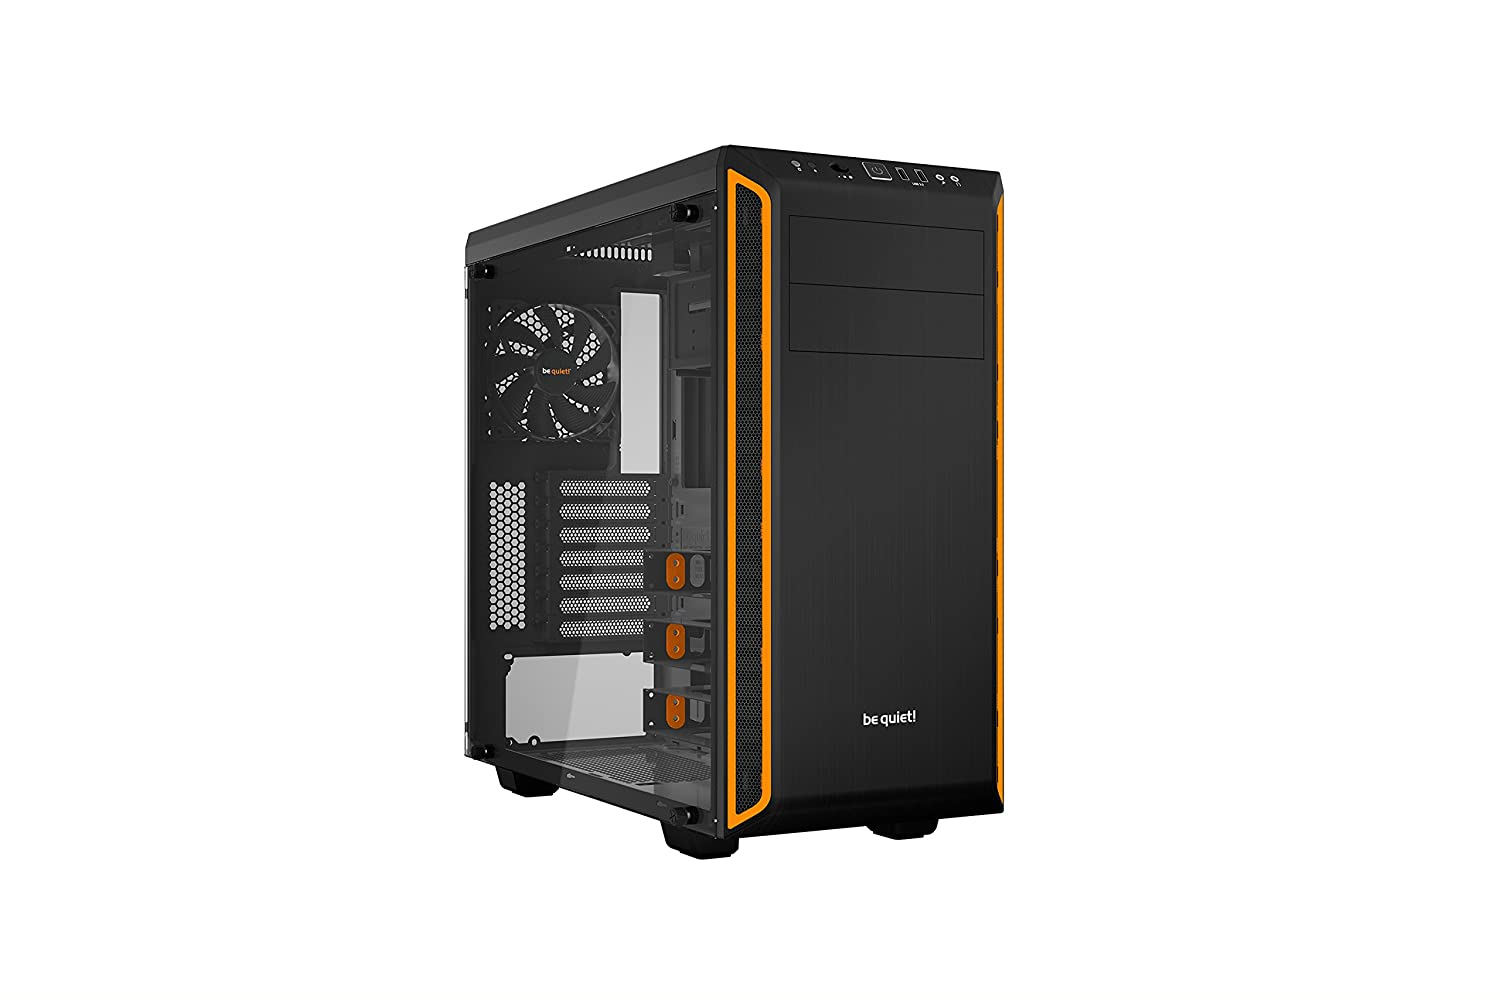 be quiet! Pure Base 600 Window Orange, BGW20, Mid-Tower ATX, 2 Pre-Installed Fans, Tempered Glass Window